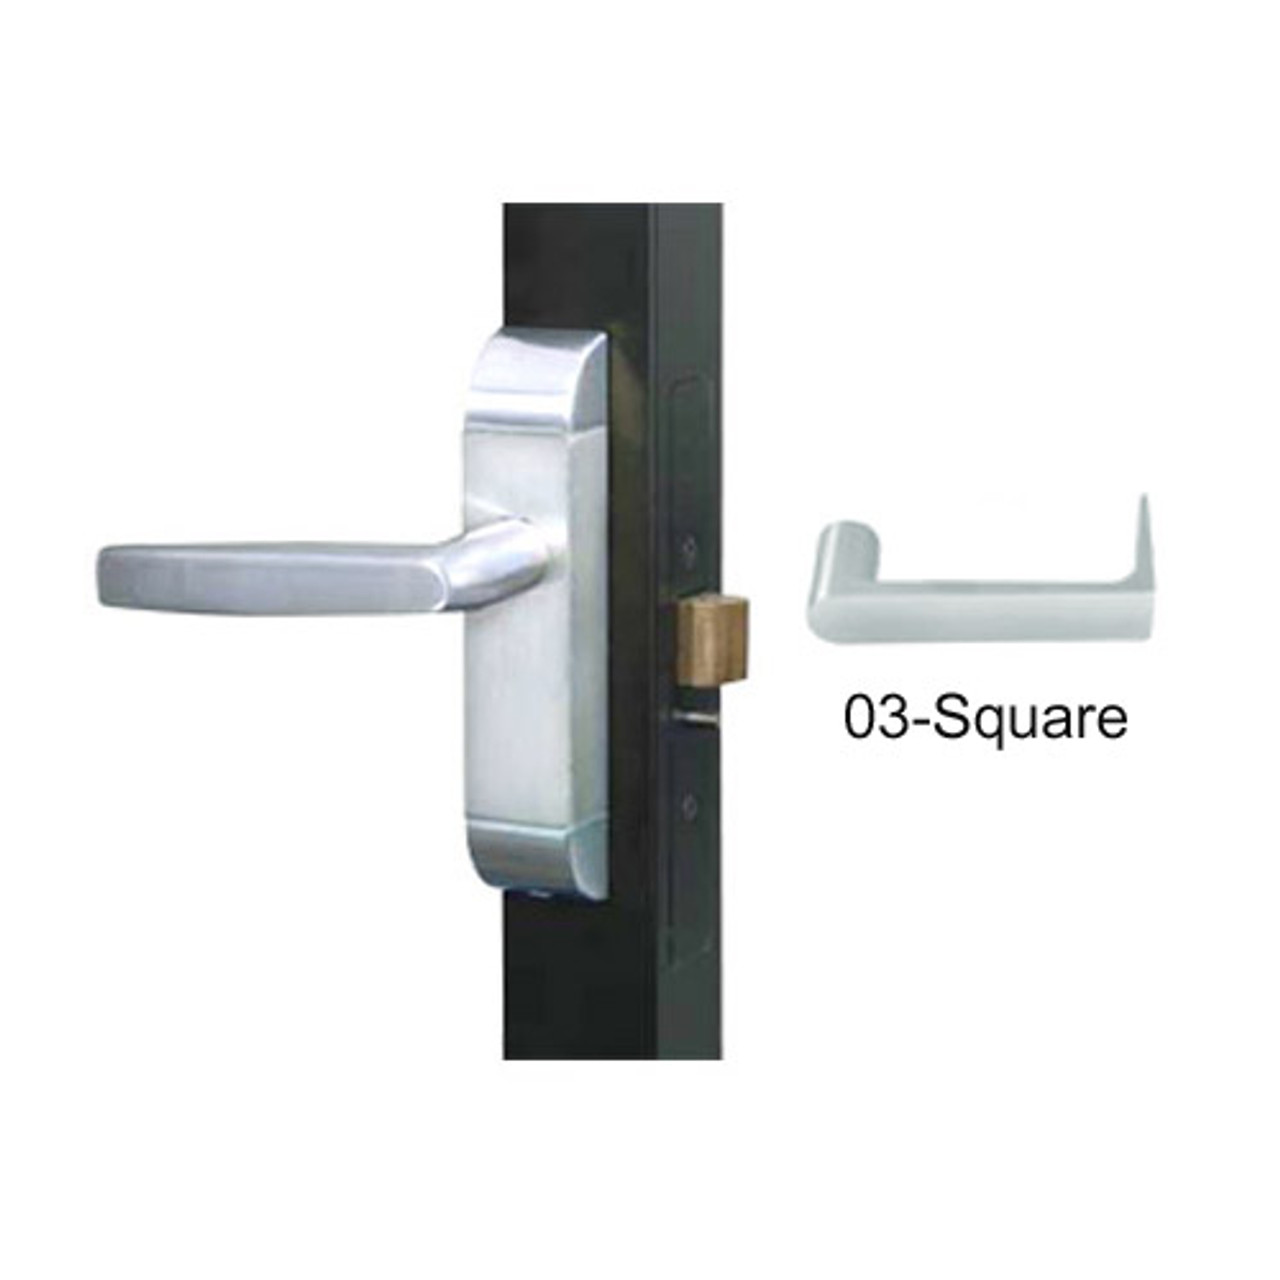 4600-03-531-US32 Adams Rite Heavy Duty Square Deadlatch Handles in Bright Stainless Finish